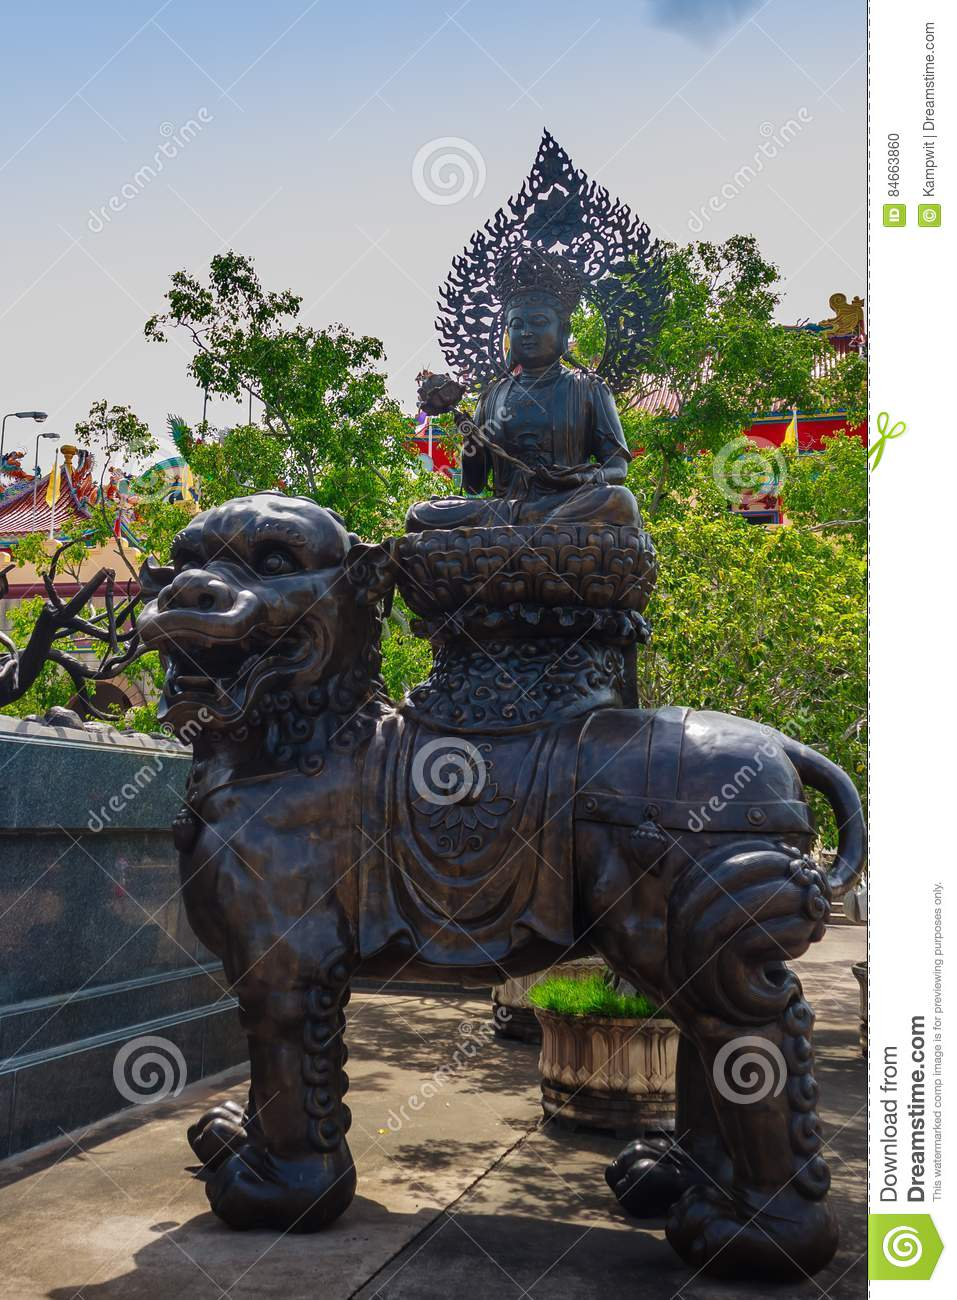 Beautiful Chinese`s style sculptures at Anek Kusala Sala Viharn Sien, Thai-Chinese temple in Pattaya, Thailand. It was built in